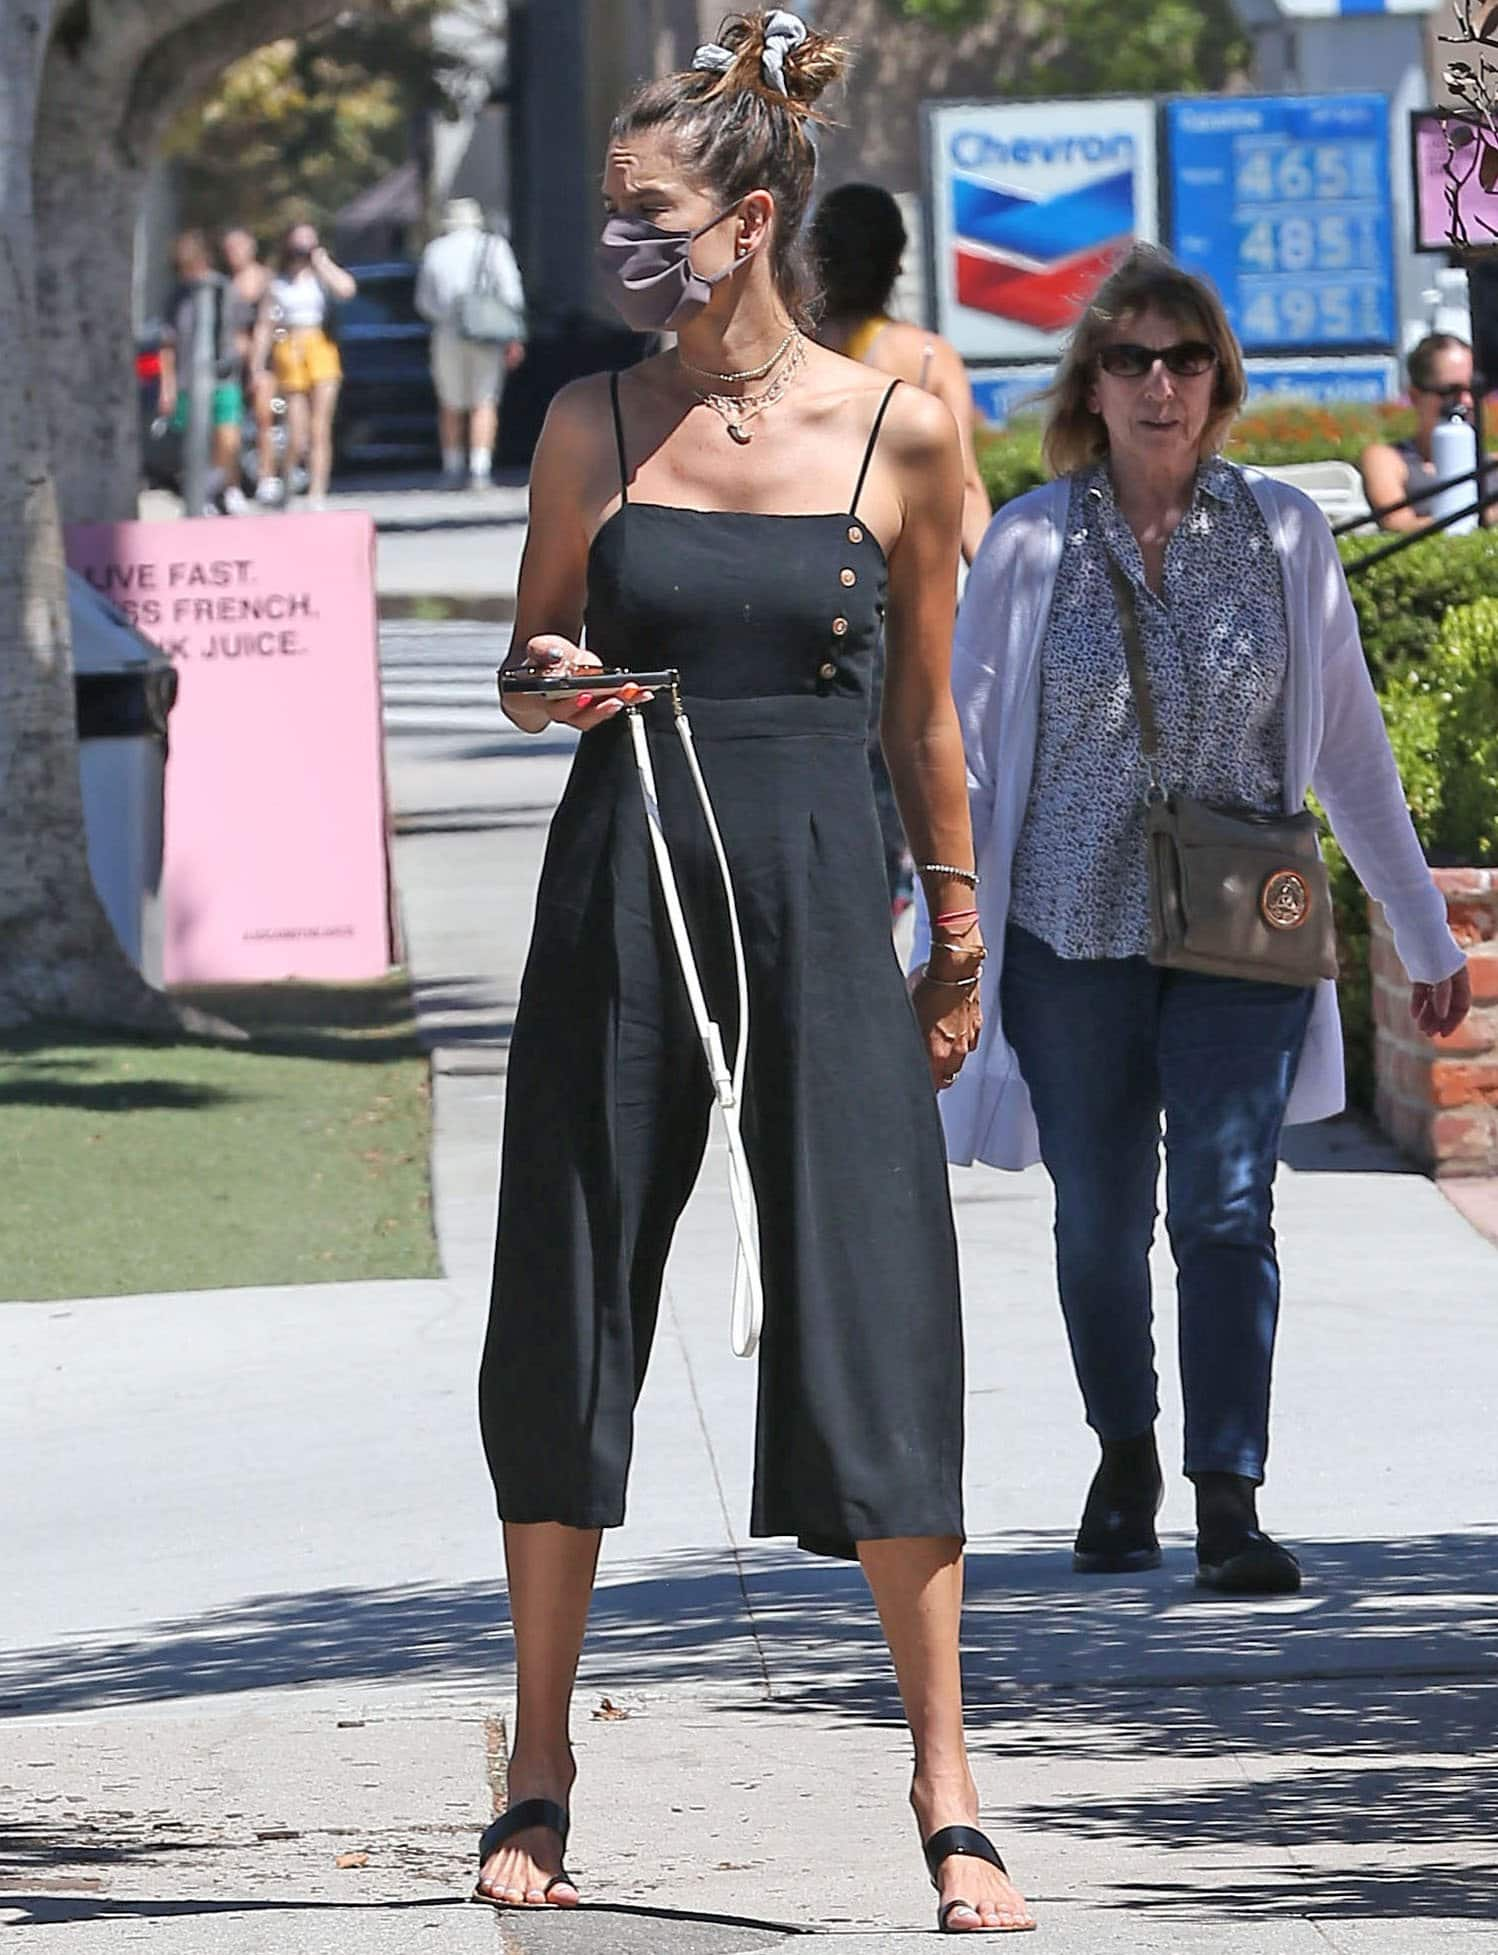 Alessandra Ambrosio looks chic in a black culotte jumpsuit that highlights her model figure